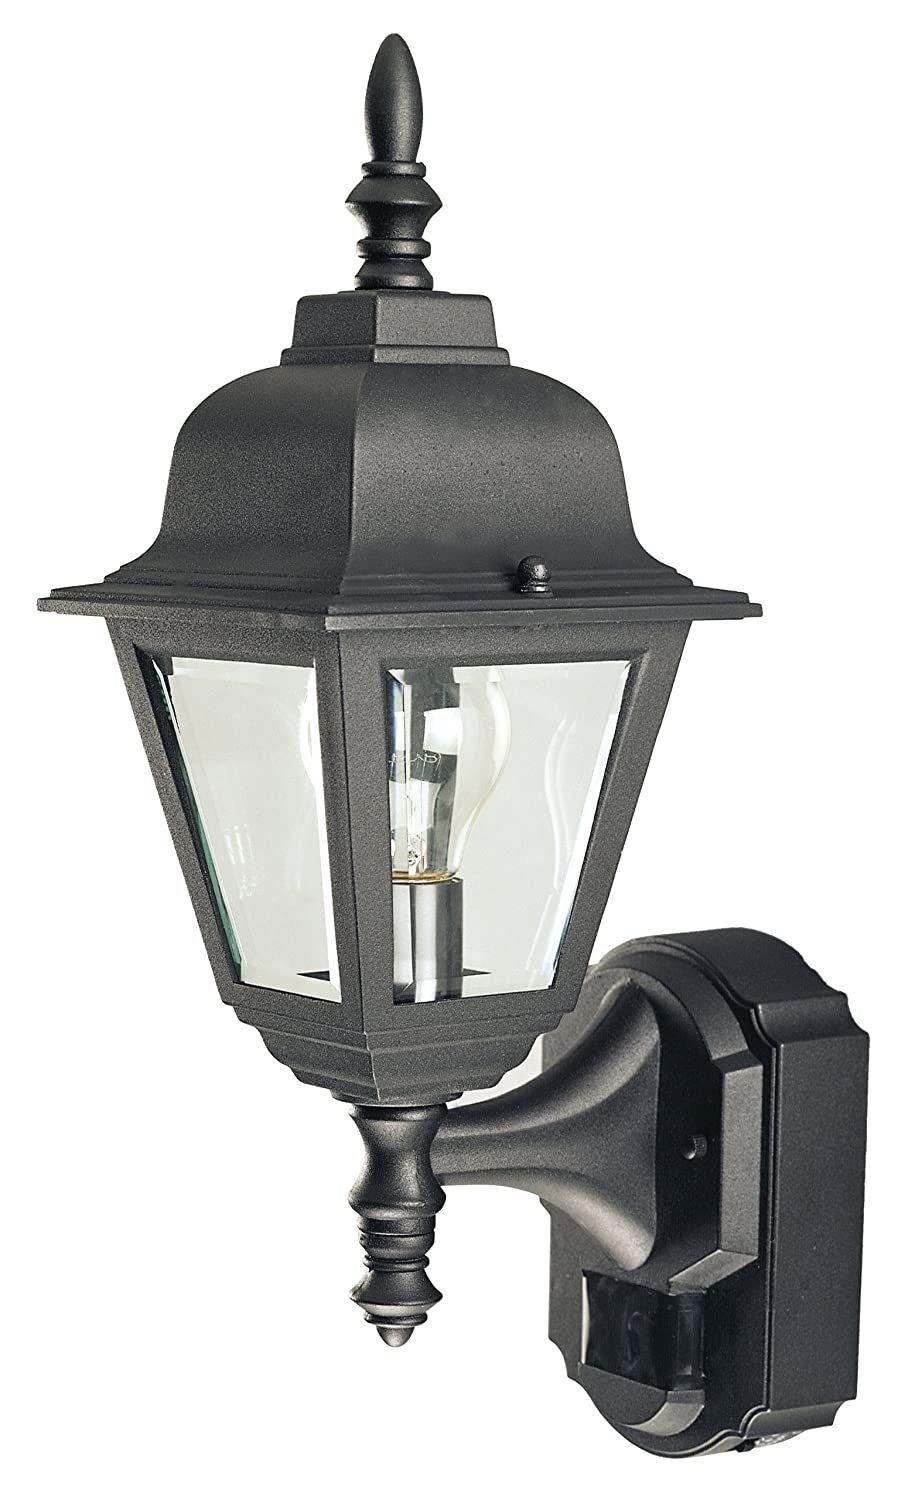 Great Heath Zenith SL 4191 BK 180 Degree Motion Activated Country Cottage  Decorative Lantern, Black